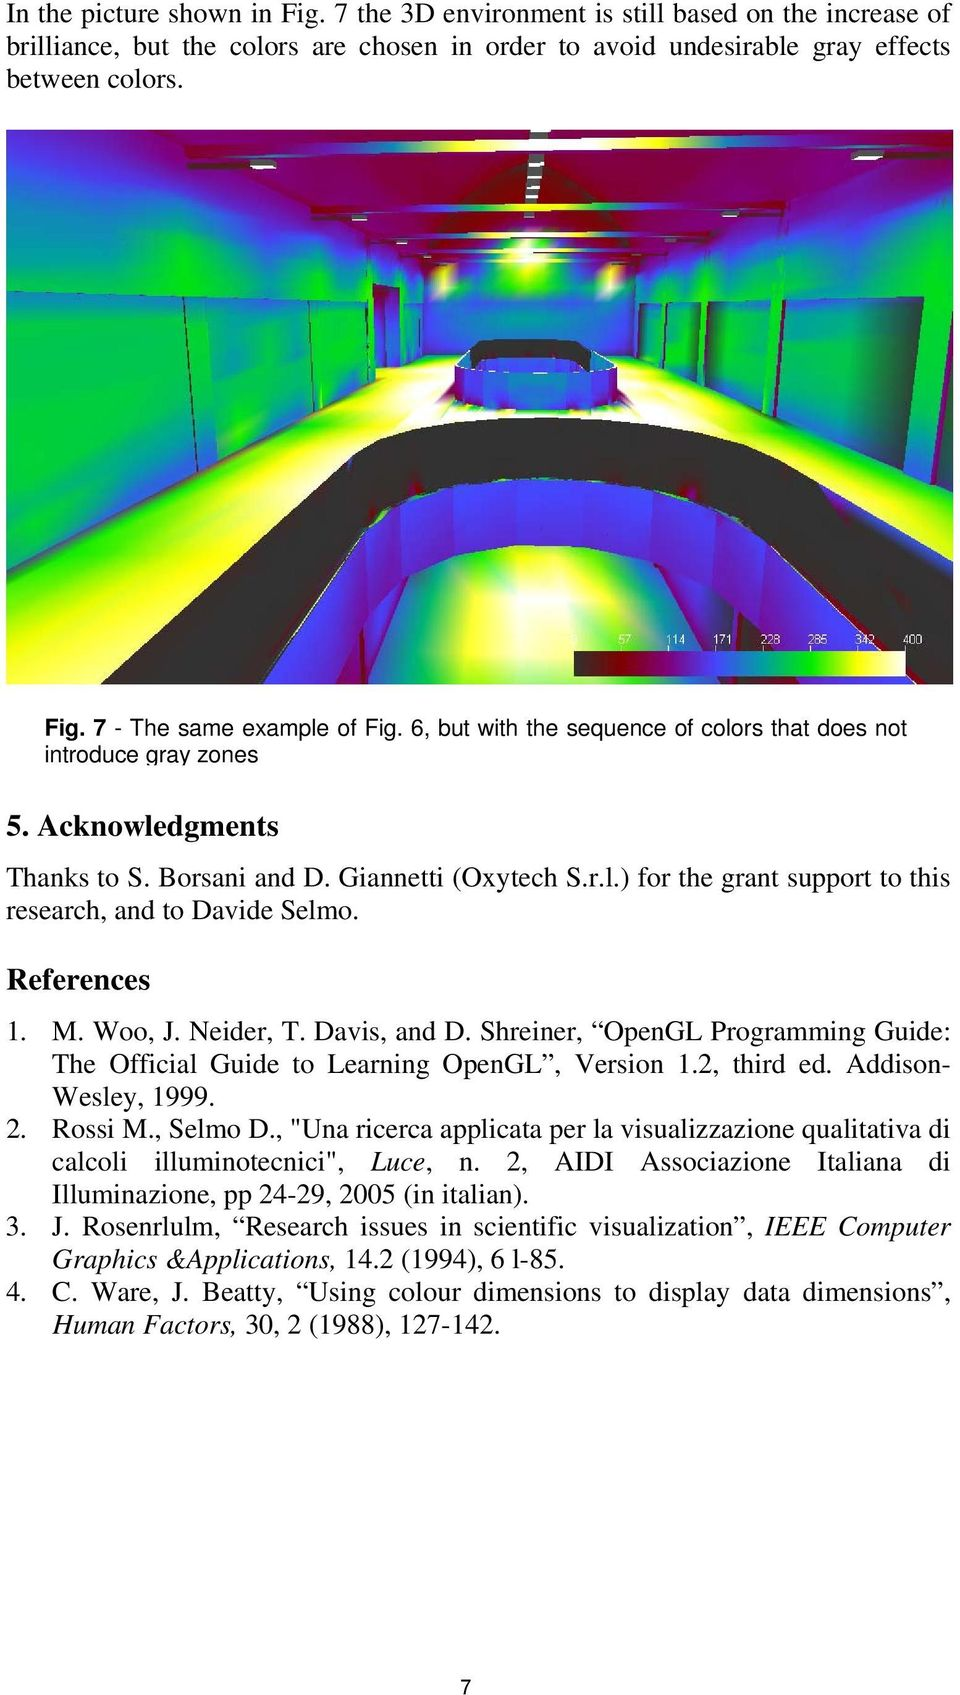 References 1. M. Woo, J. Neider, T. Davis, and D. Shreiner, OpenGL Programming Guide: The Official Guide to Learning OpenGL, Version 1.2, third ed. Addison- Wesley, 1999. 2. Rossi M., Selmo D.